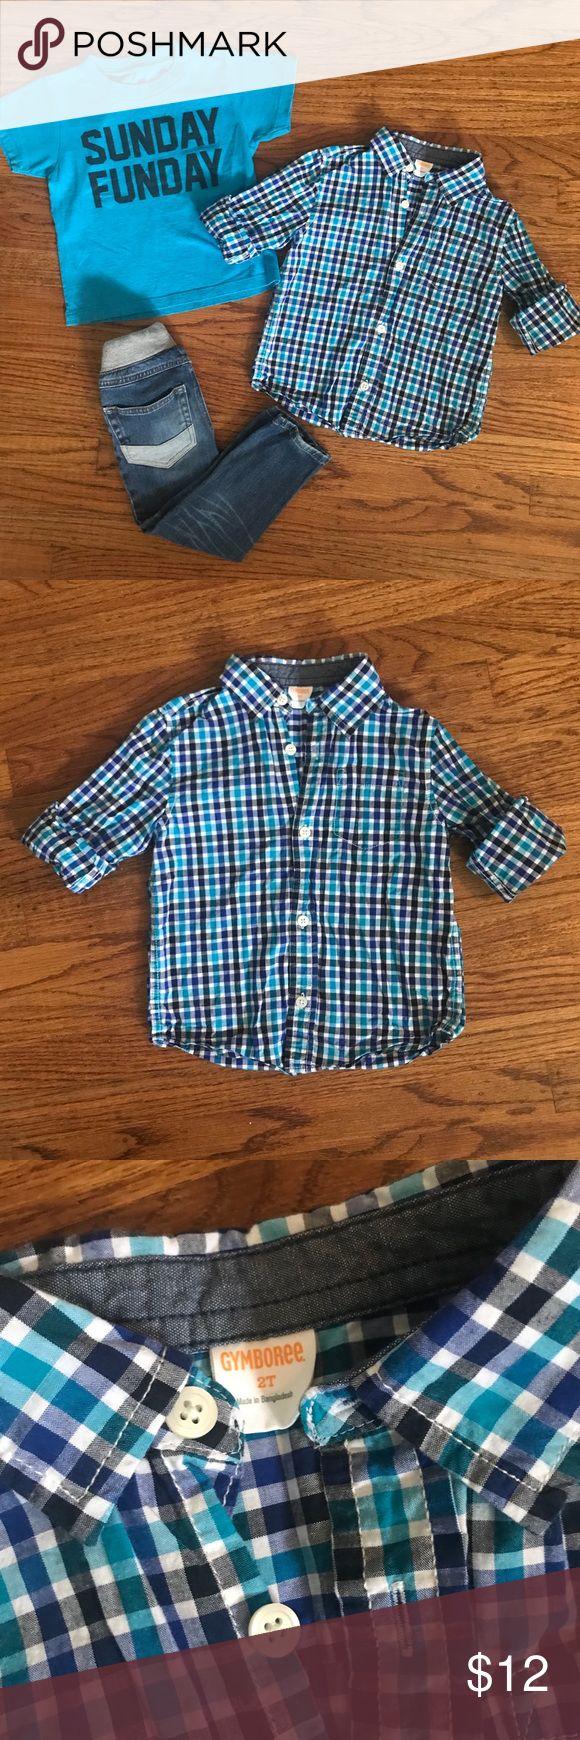 Boy's Outfit Bundle includes short sleeve Sunday Funday shirt, long sleeve button down checkered shirt, and a pair of jeans. Jeans are Cat & Jack size 3T. The brand/size of the short sleeve tee has faded and is unreadable, but it was purchased from Nordstrom Rack and is size 3T. The brand is Kid Dangerous Grime Couture. Long sleeve button down shirt is Gymboree size 2T. My son was able to wear this shirt as a 3 year old. All items are in GUC/VGUC. Jeans have slight fading on knees (see last…